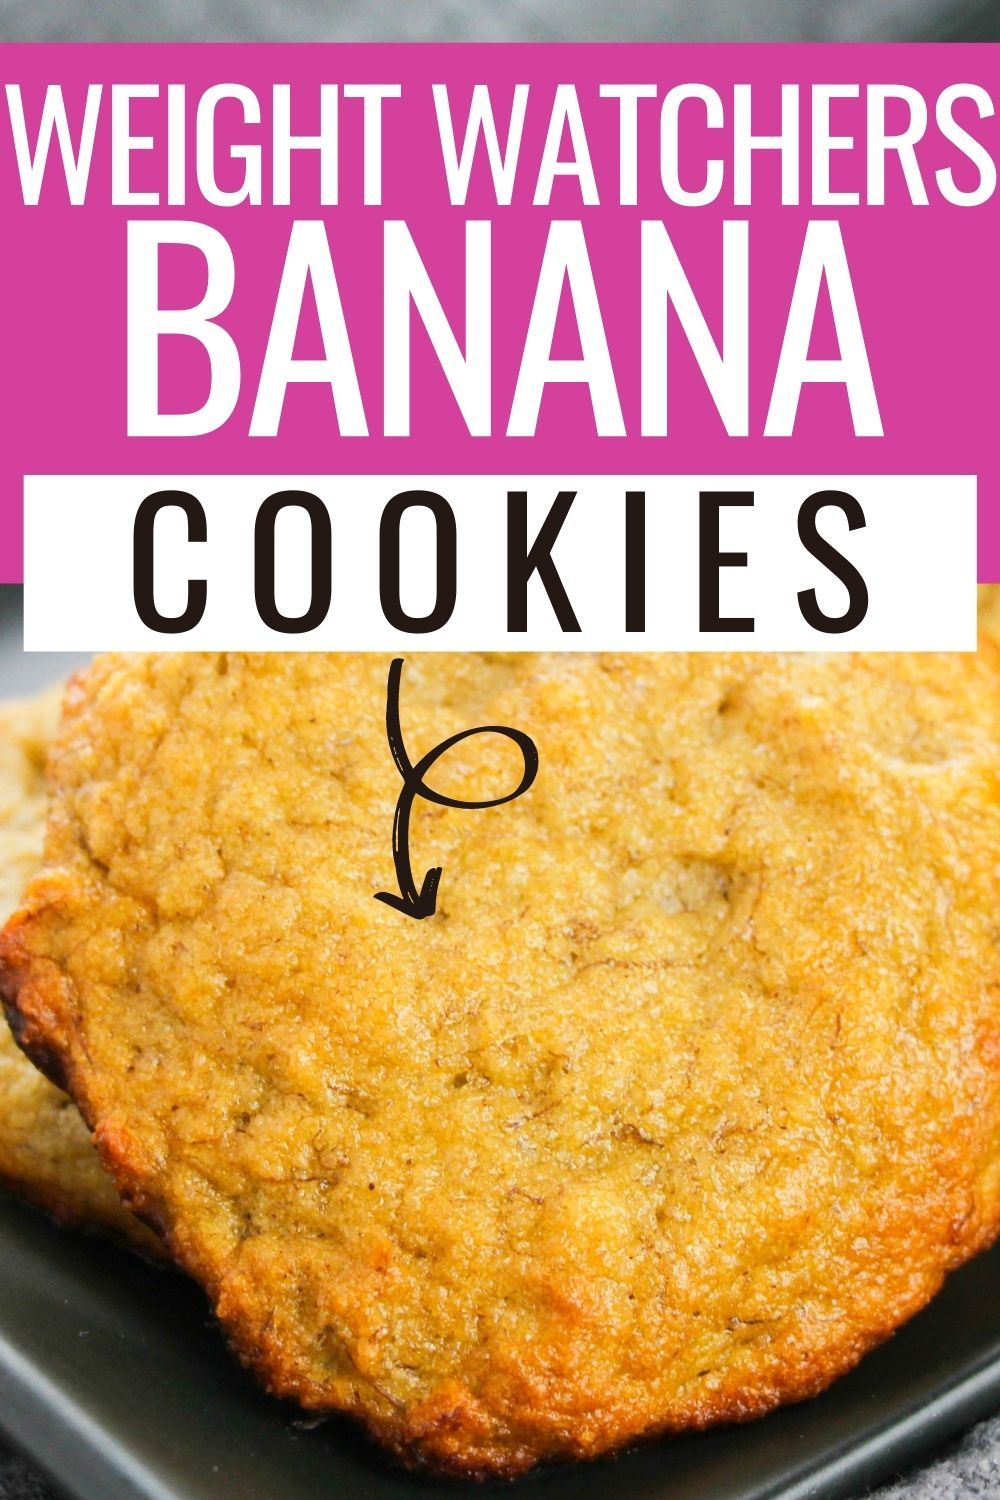 pin showing the finished weight watchers banana cookies recipe with title at the top.